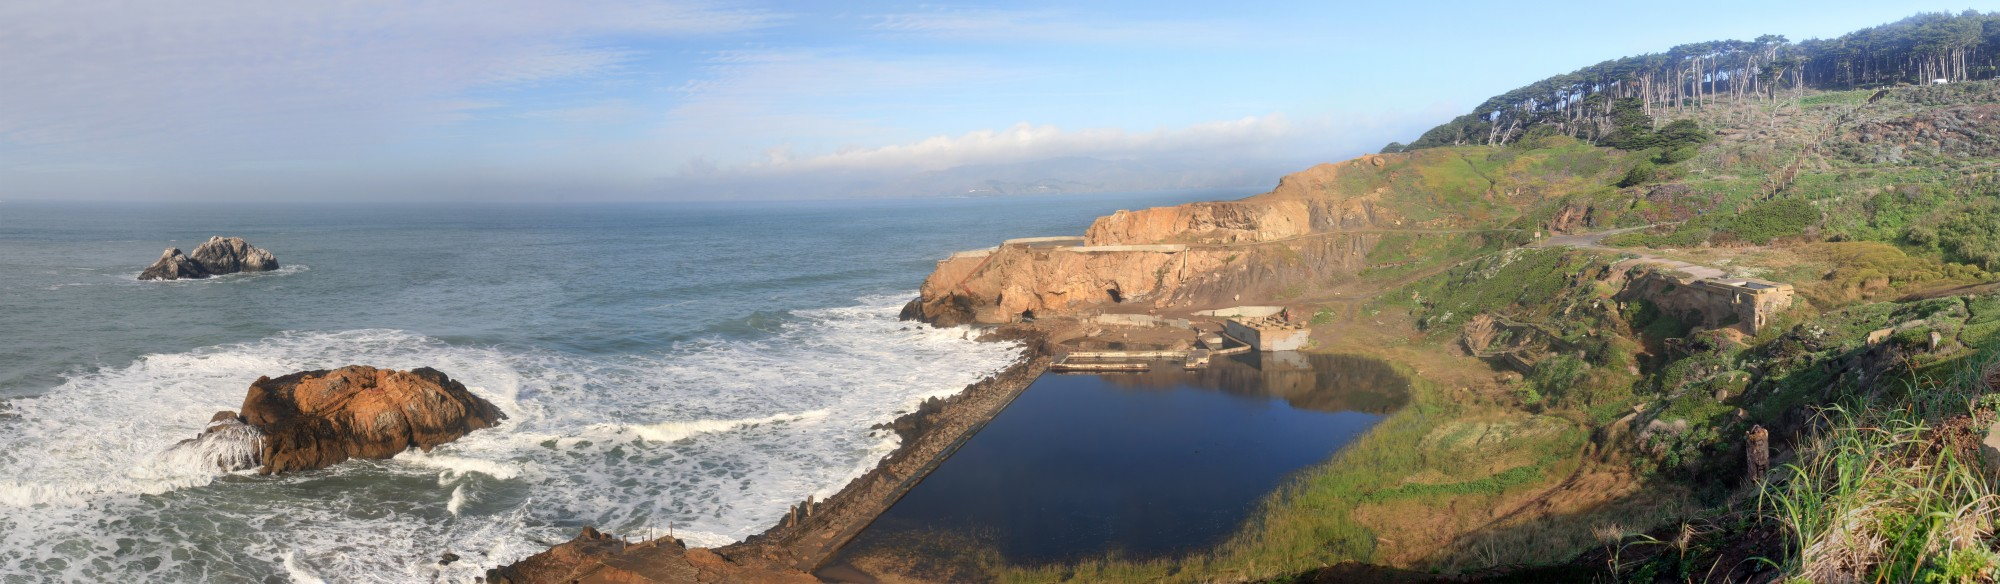 Sutro Baths and Seal Rocks